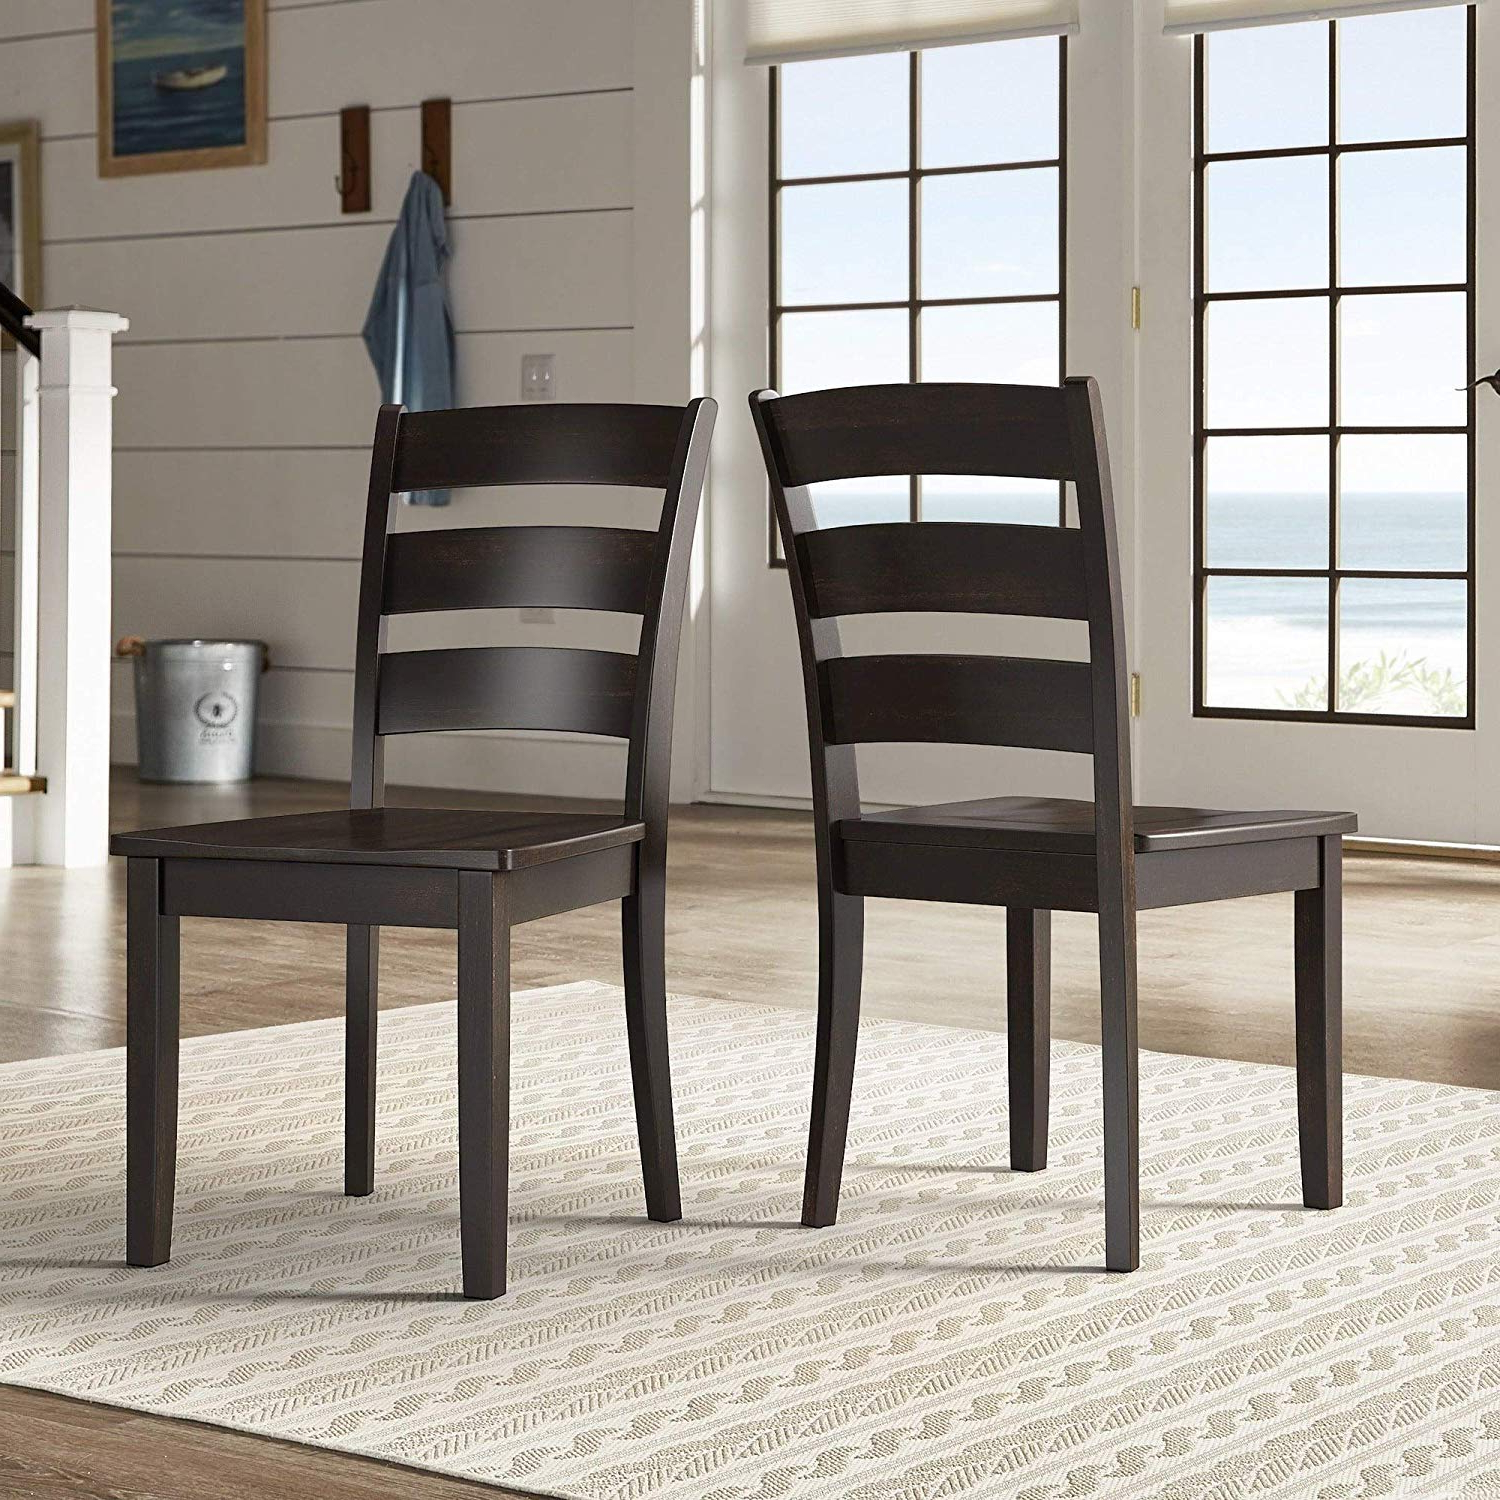 Distressed Grey Finish Wood Classic Design Dining Tables inside Latest Amazon - Inspire Q Wilmington Ii Ladder Back Wood Dining